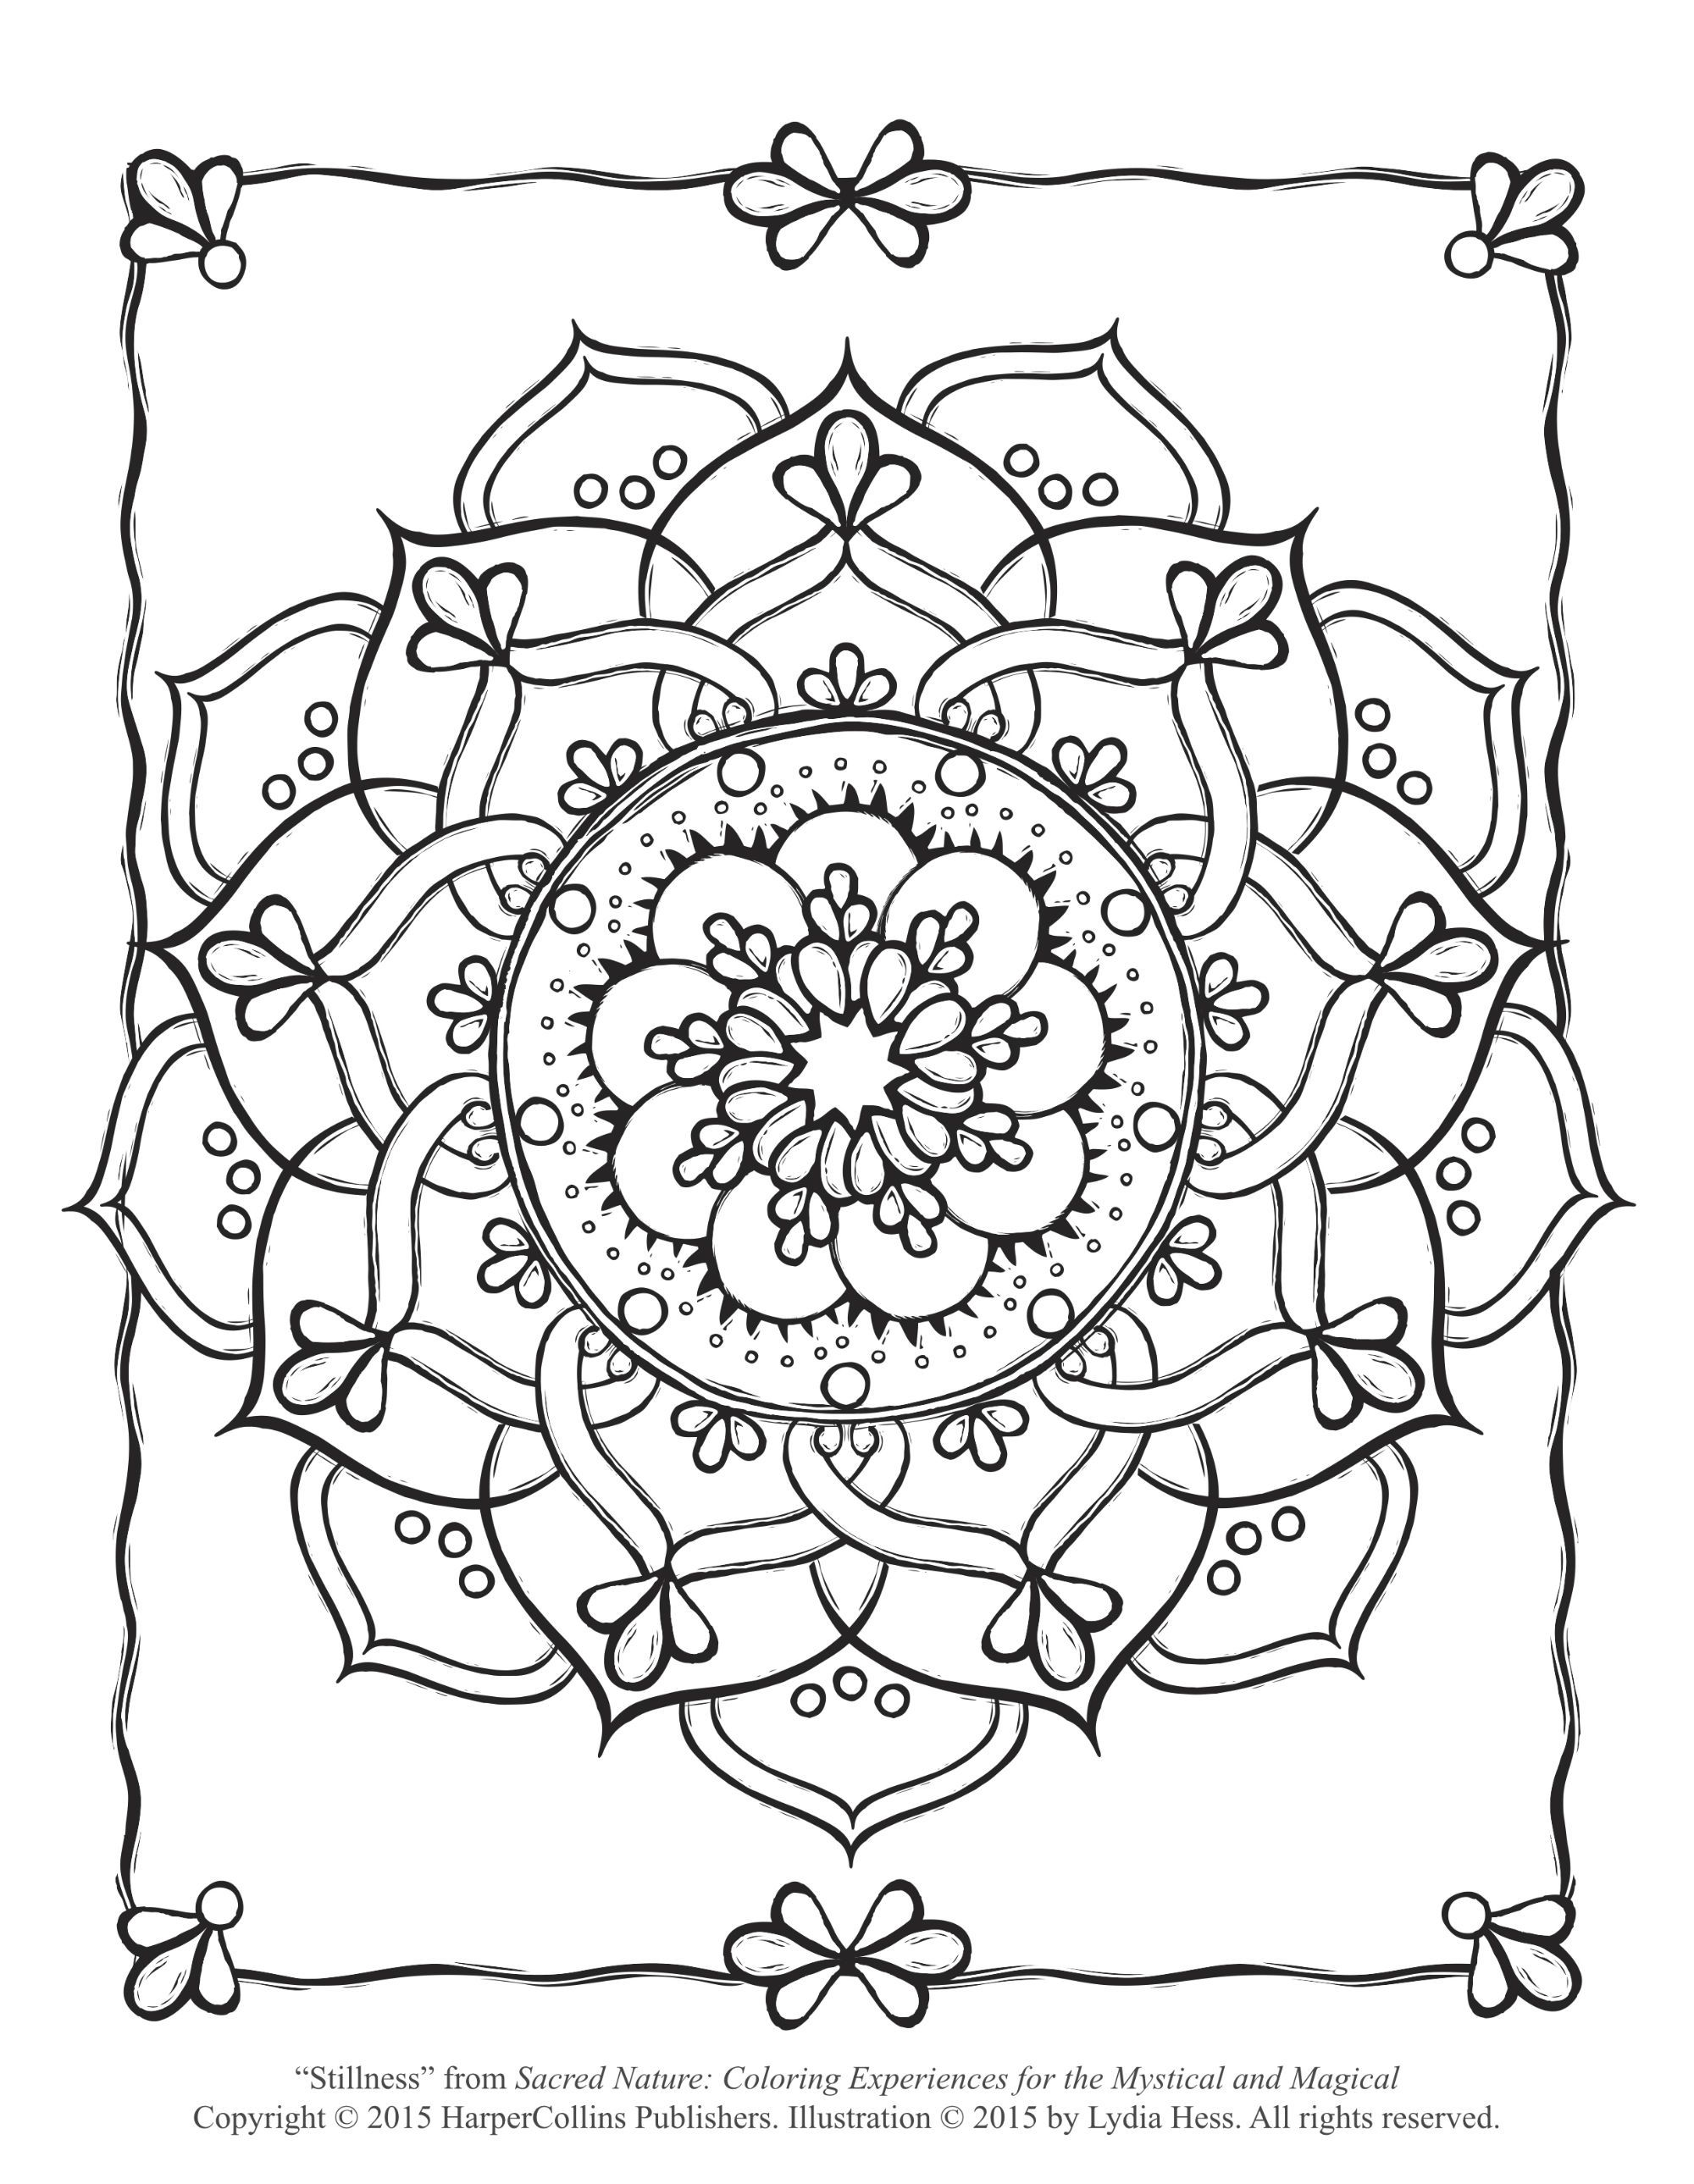 Sacred Flower Coloring Page (Free Adult Coloring Page) - Craftfoxes